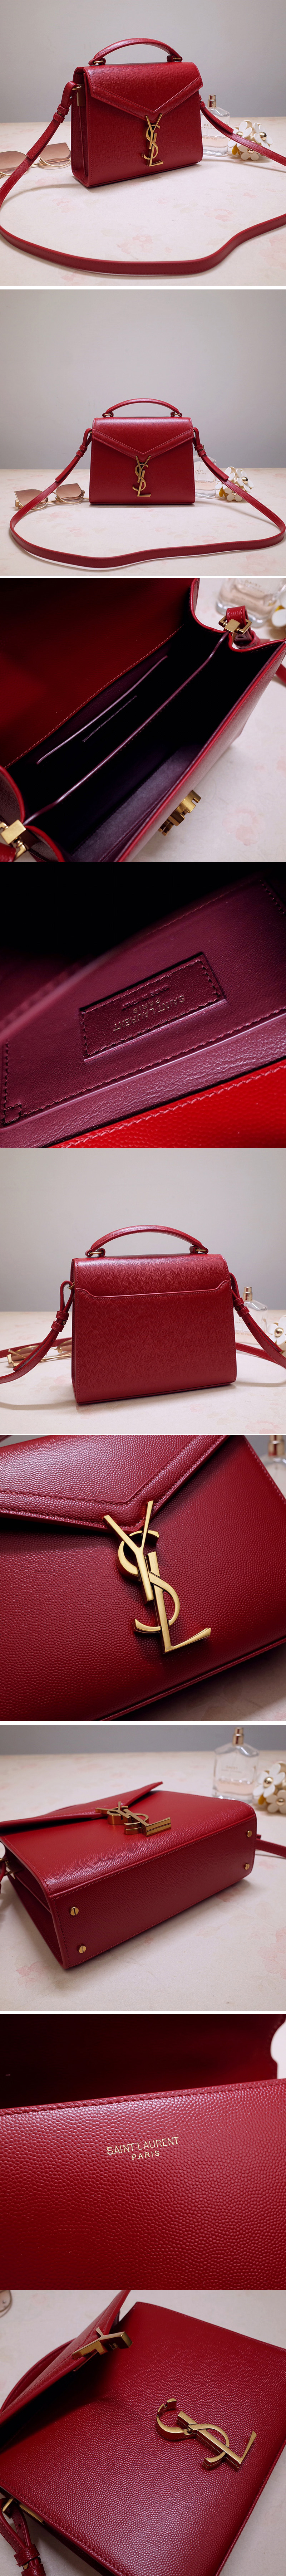 Replica Saint Laurent 602716 YSL Cassandra Mini Top handle bag In Red Grain de Poudre Embossed Leather